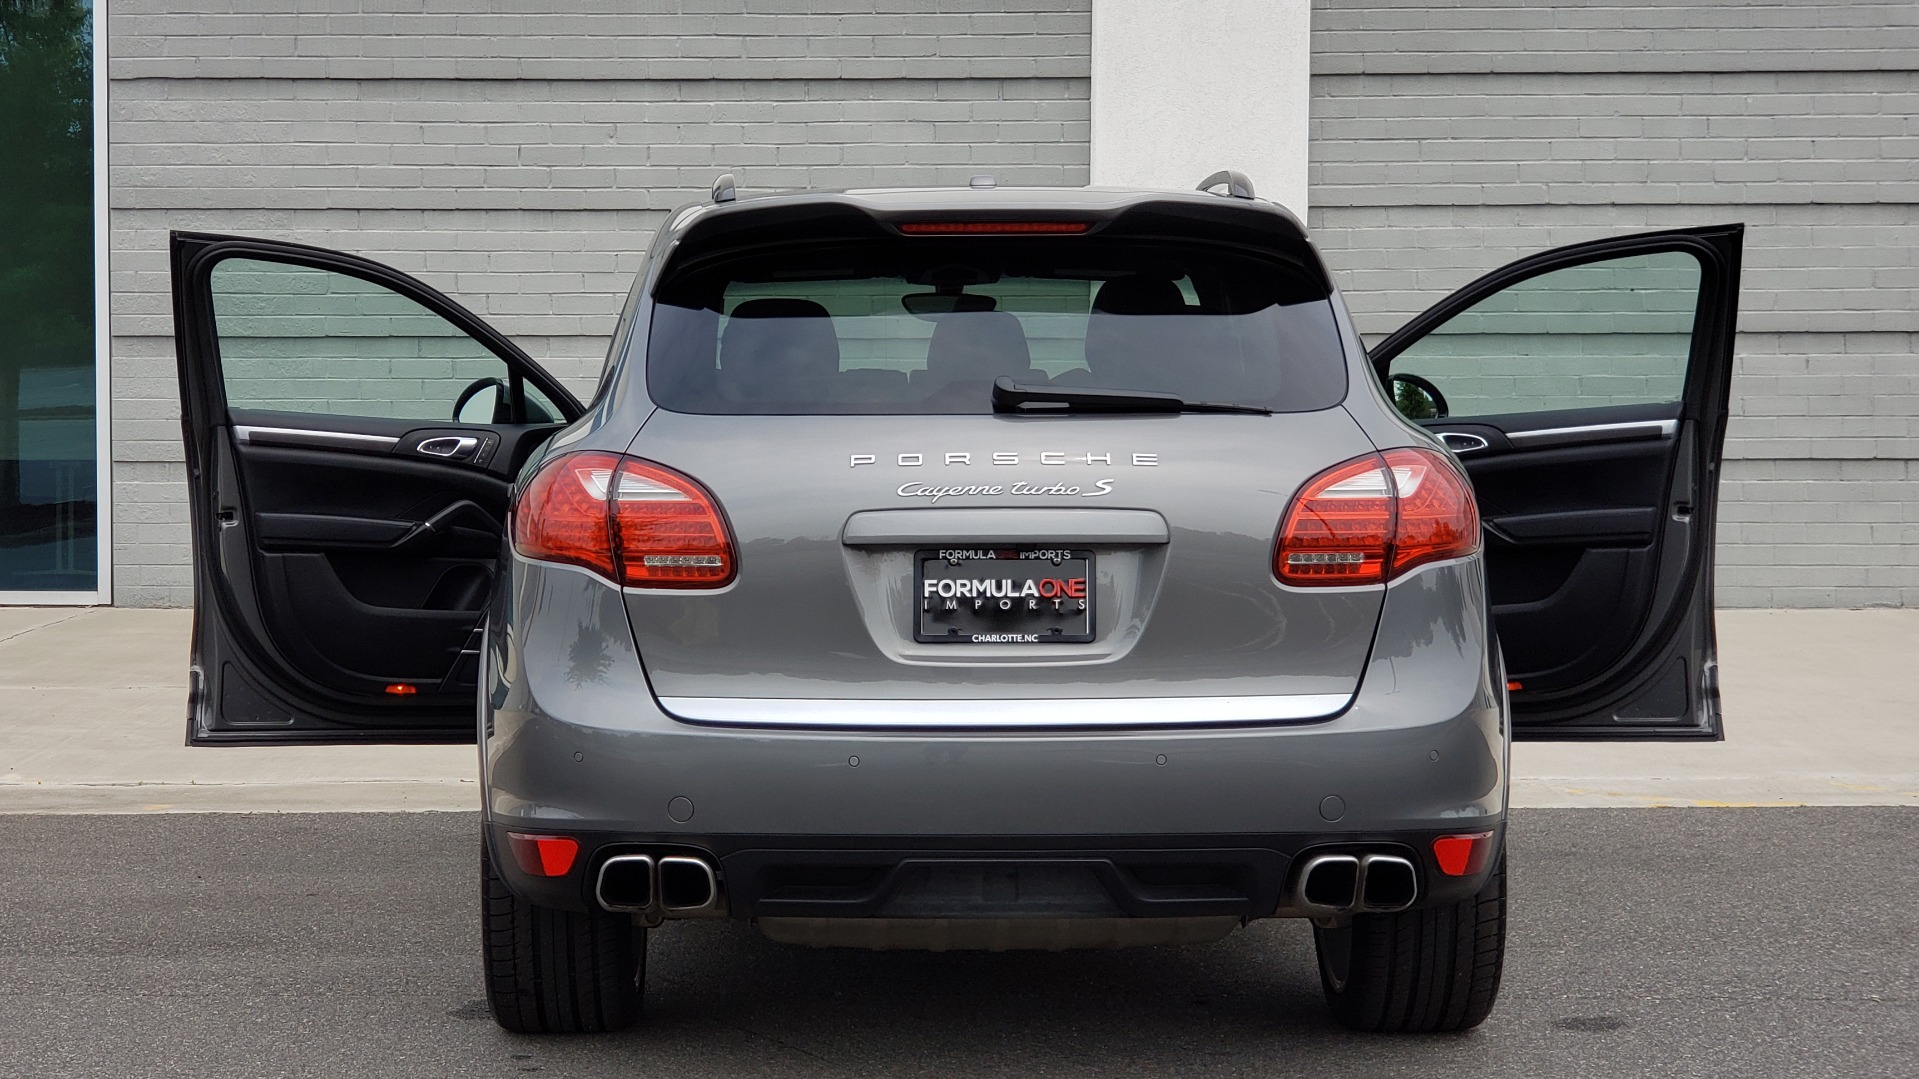 Used 2014 Porsche CAYENNE TURBO S / AWD / NAV / BOSE / PANO-ROOF / LCA / REARVIEW for sale Sold at Formula Imports in Charlotte NC 28227 32